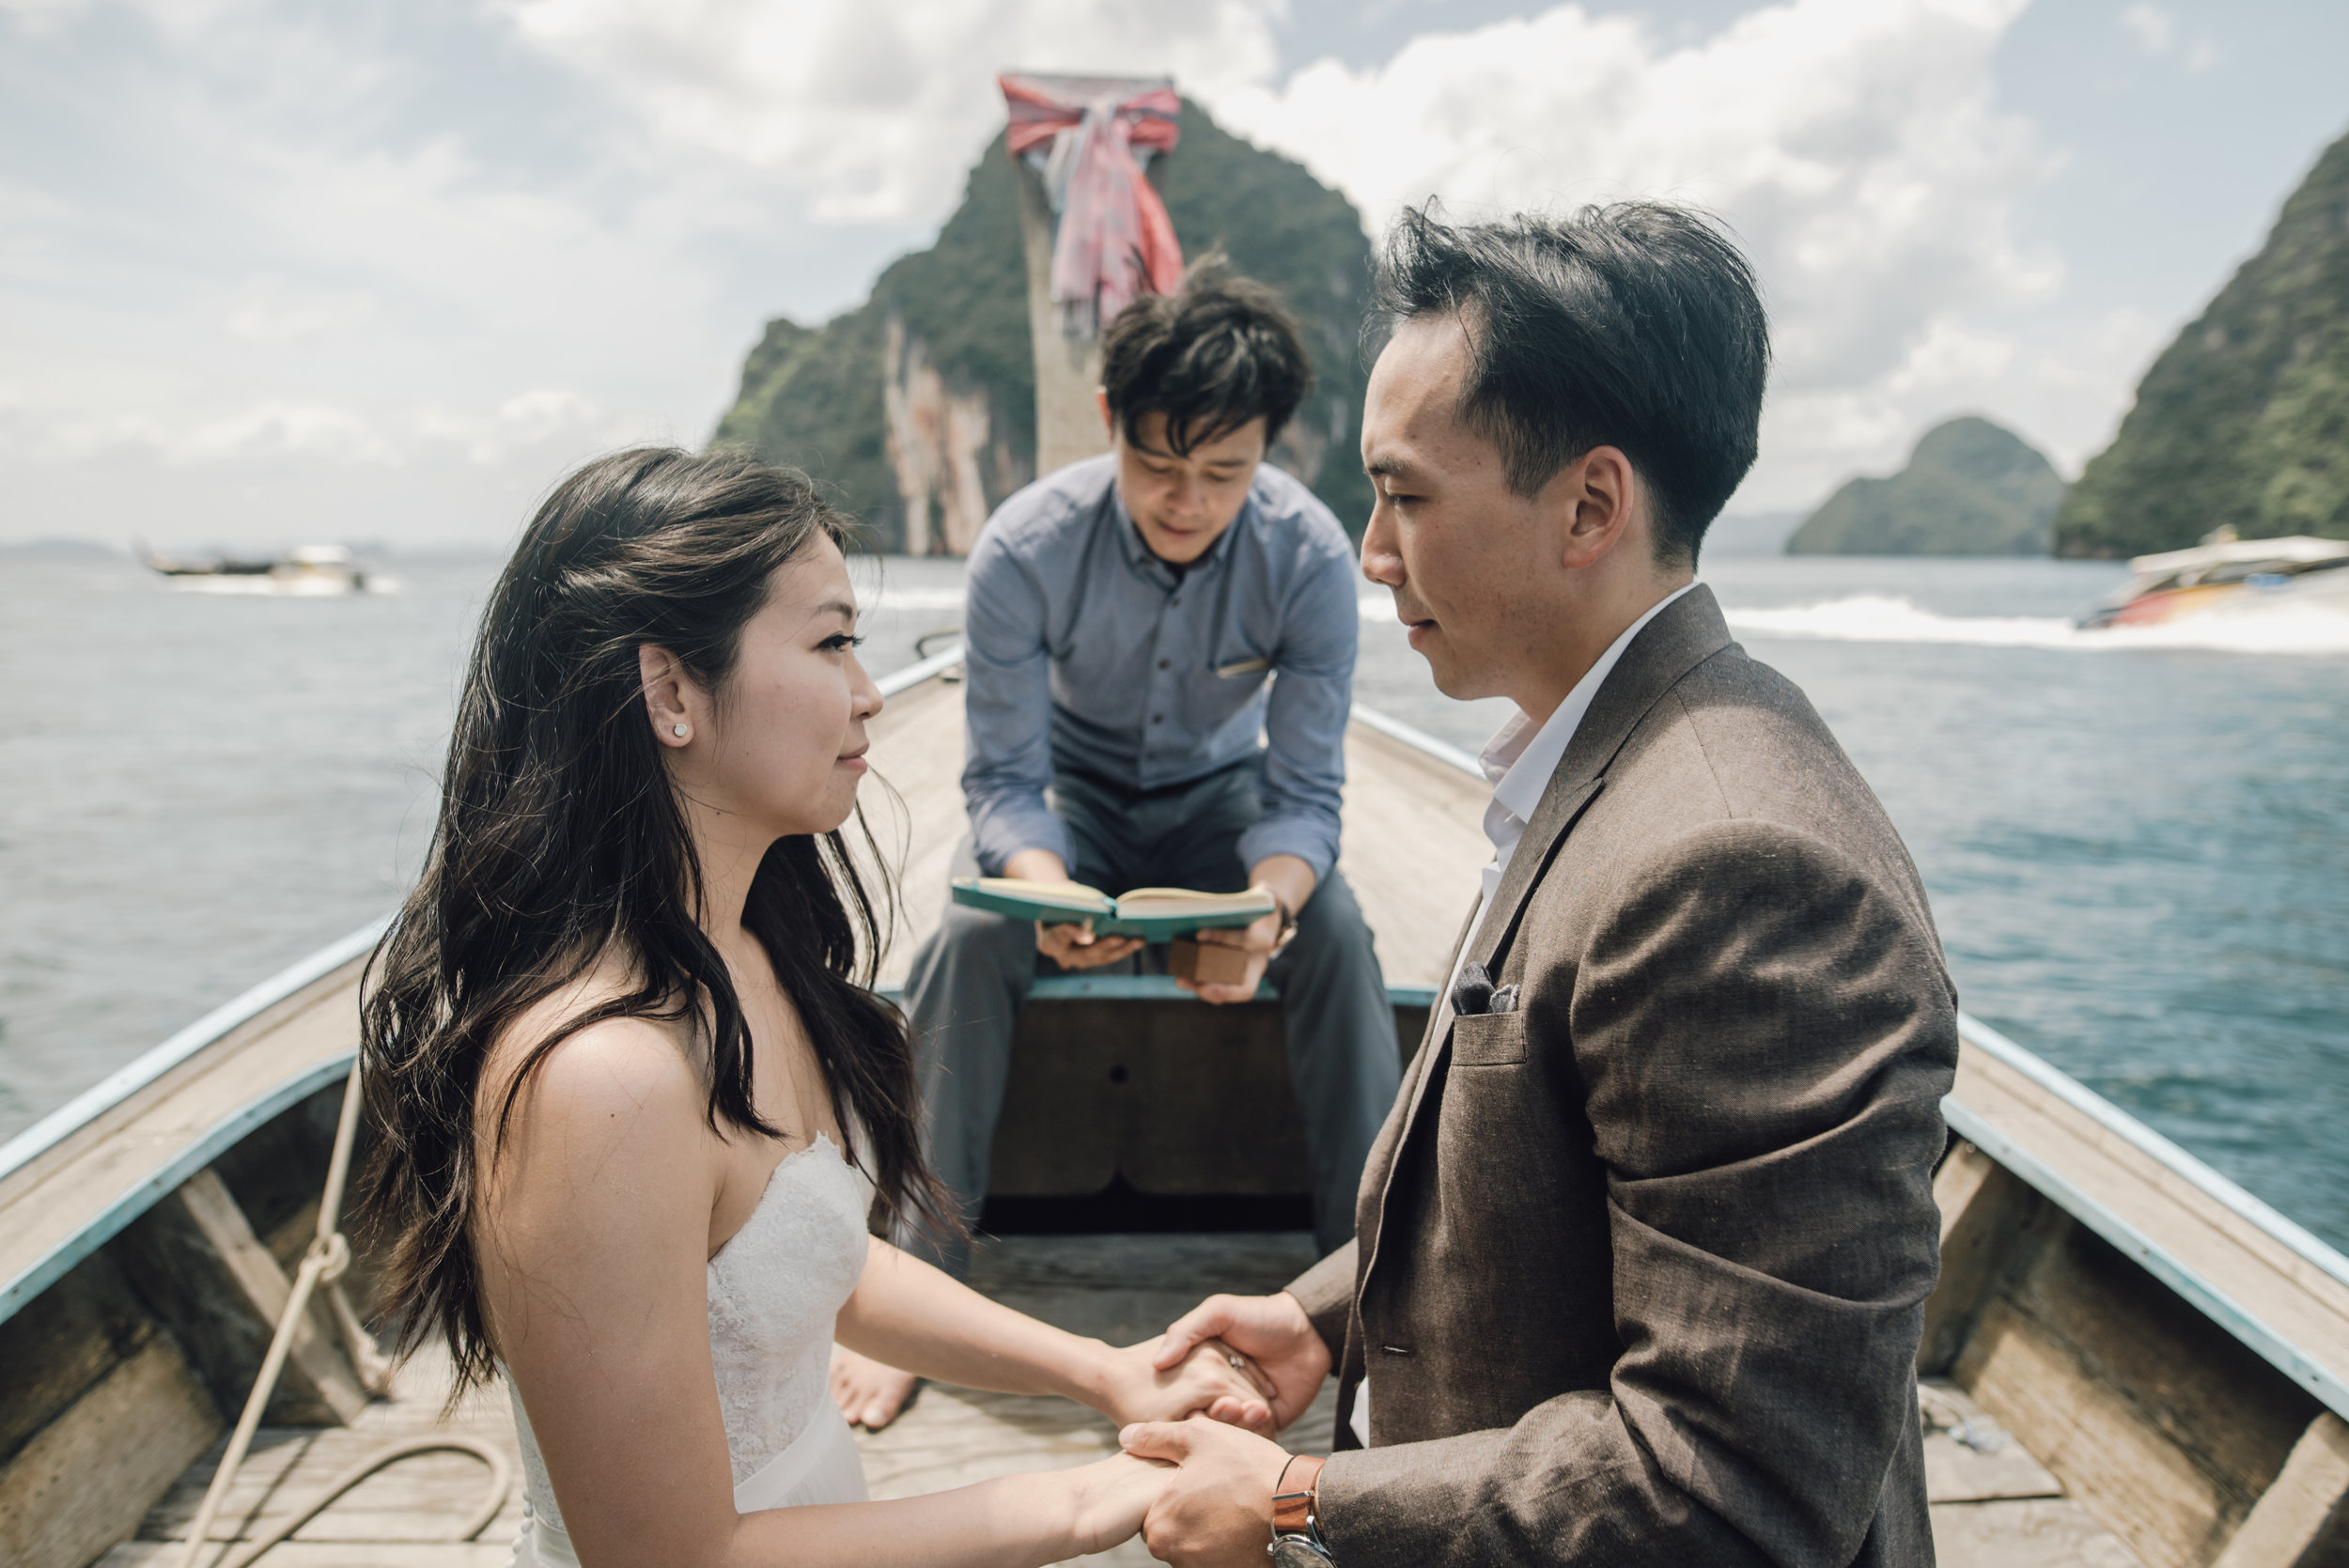 Main and Simple Photography_2017_Elopement_Thailand_J+H-455.jpg